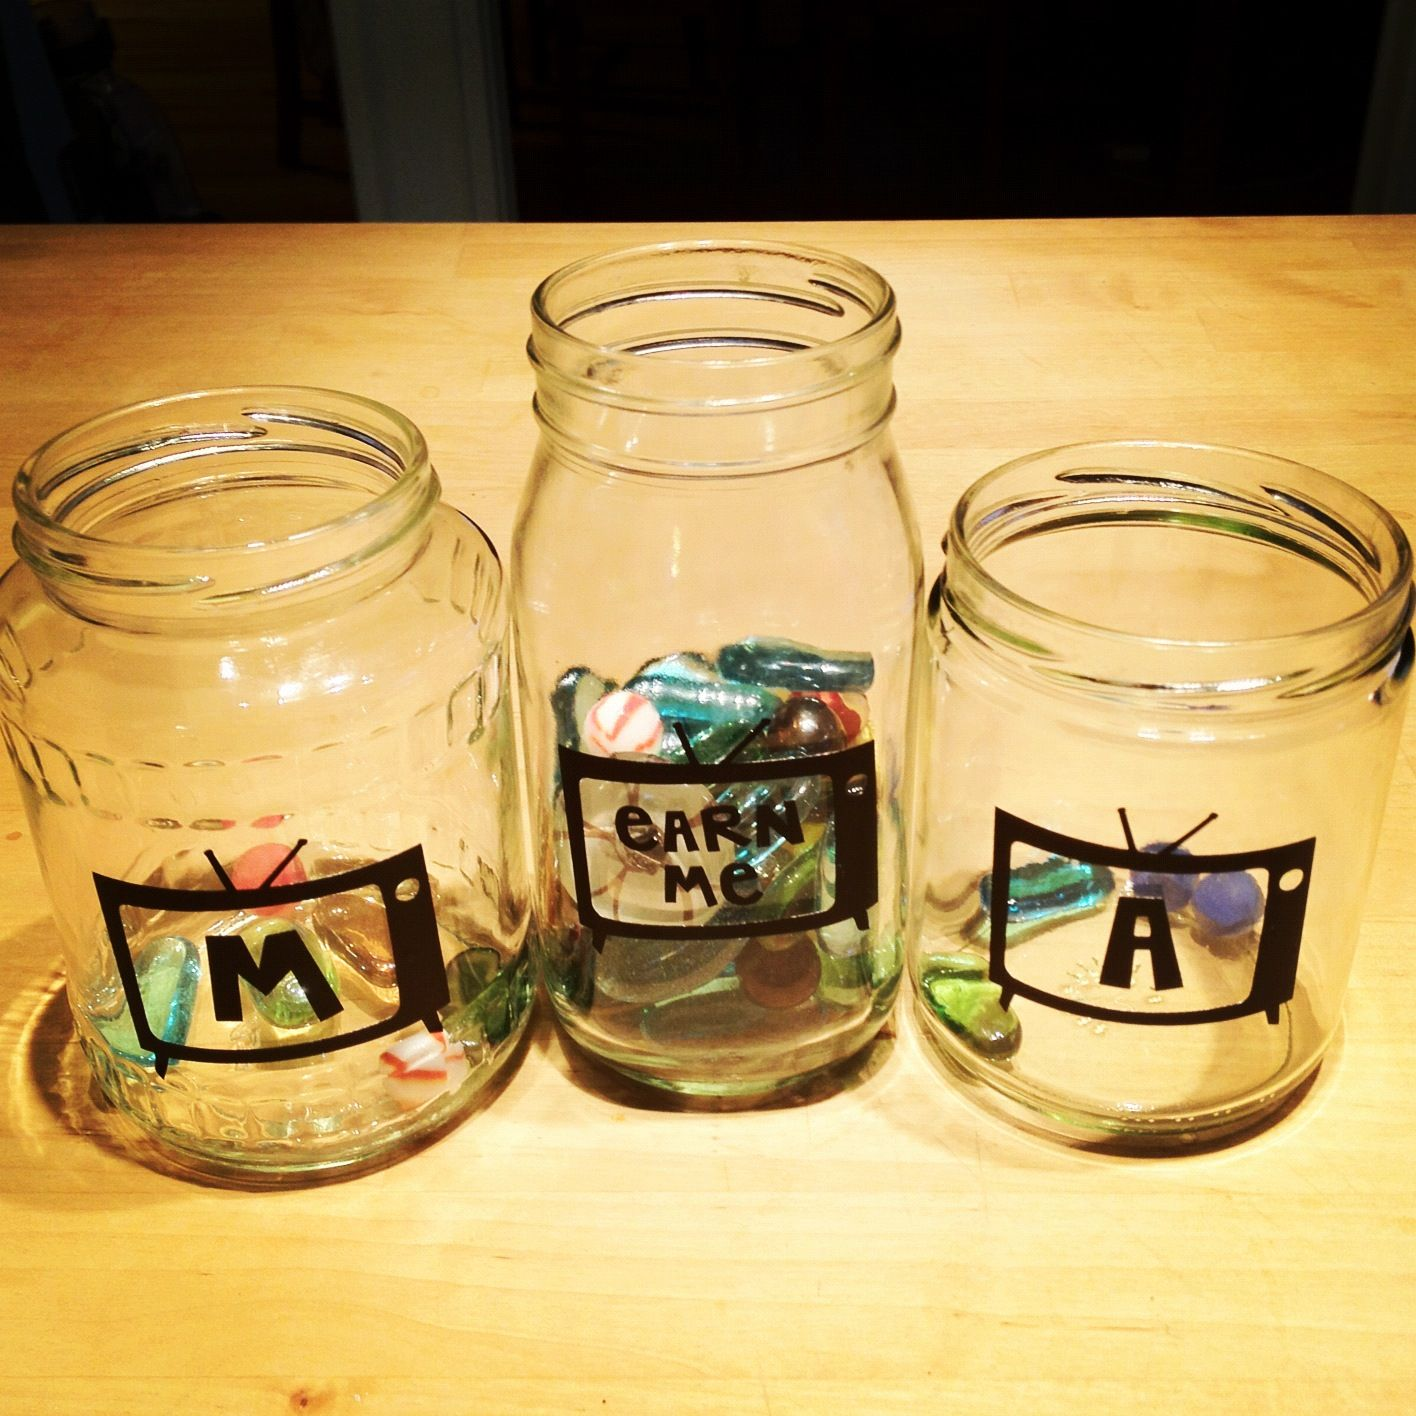 Screen time jars. Earn a marble and move it to your jar. One marble = 30 minutes of screen time!